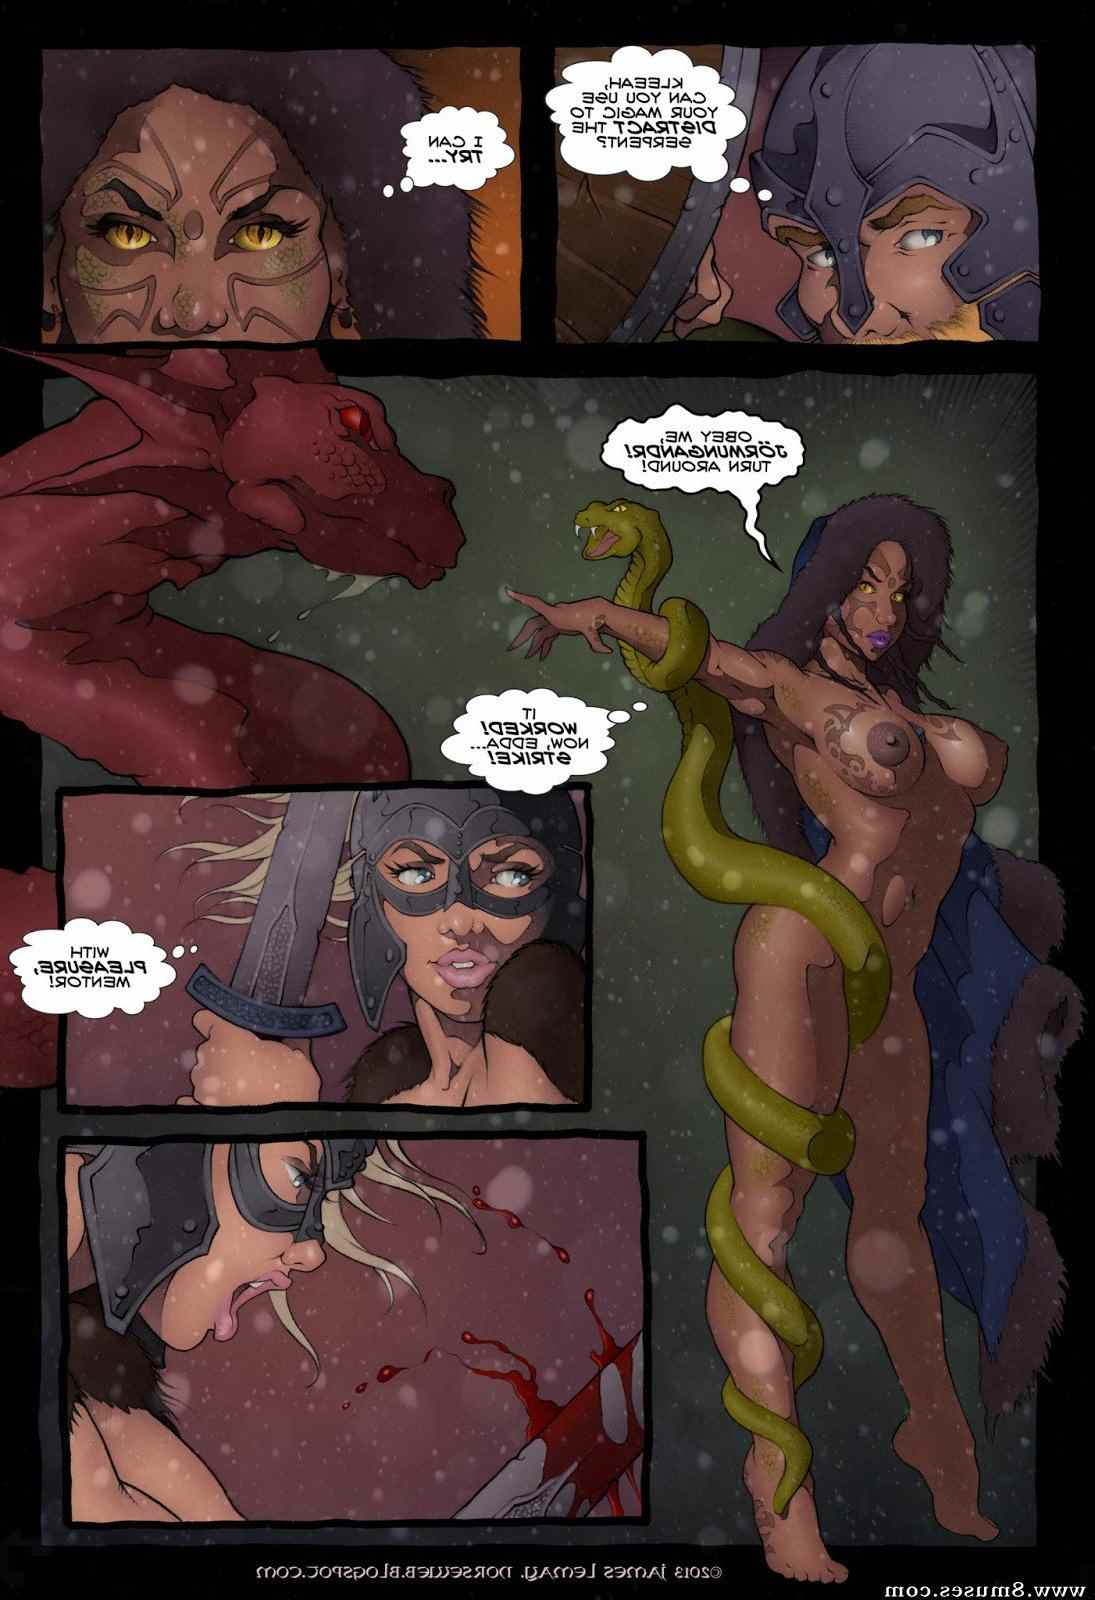 James-Lemay-Comics/Norse-Dawn-of-The-Shield-Maiden Norse_Dawn_of_The_Shield_Maiden__8muses_-_Sex_and_Porn_Comics_60.jpg